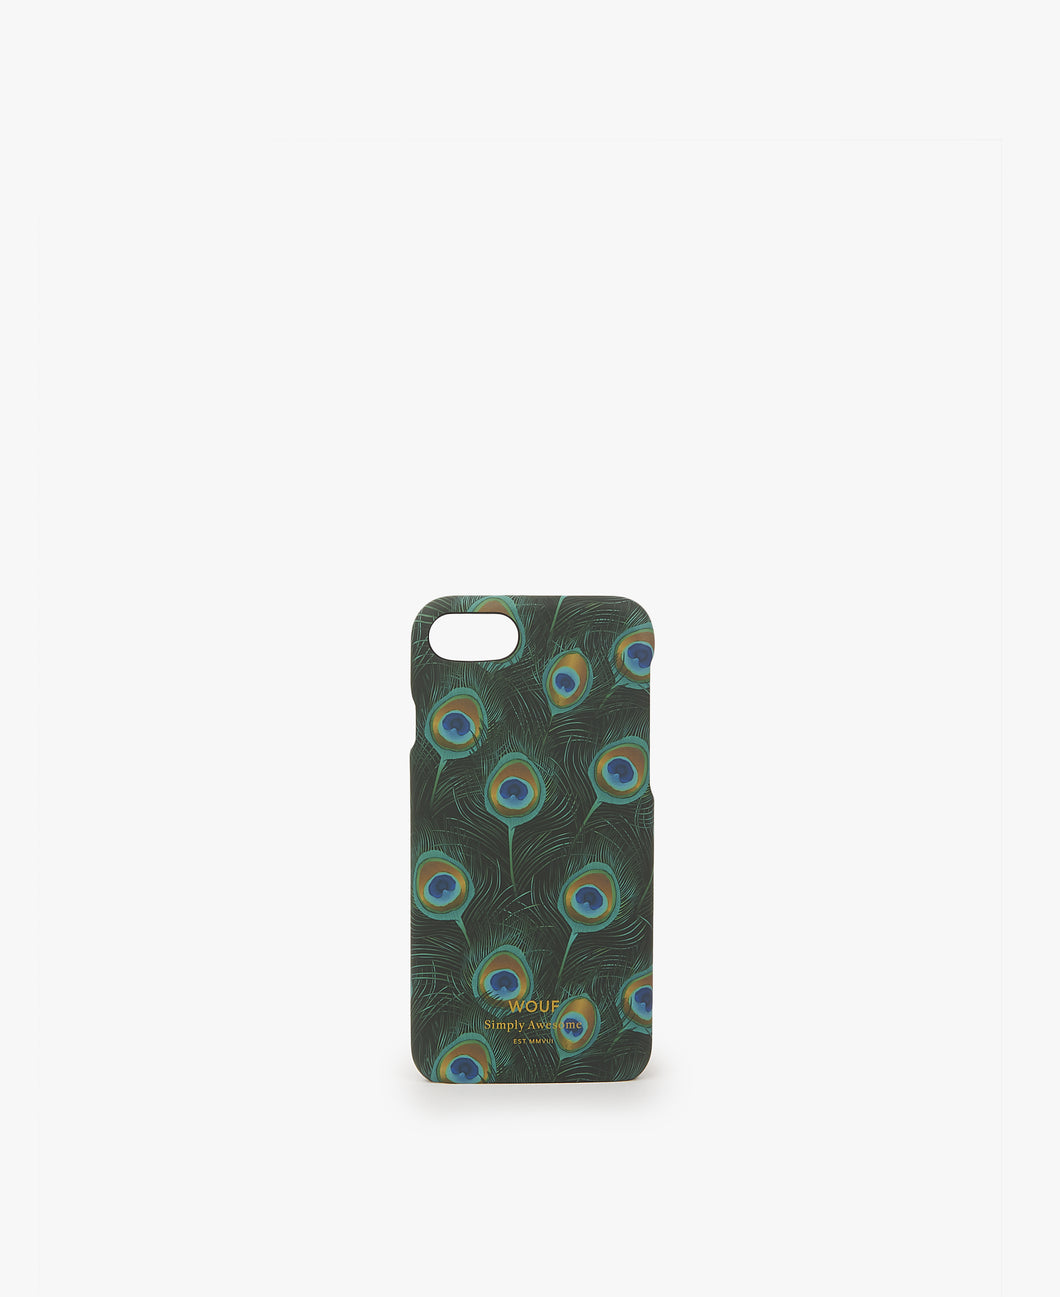 Peacock - Coque pour iPhone